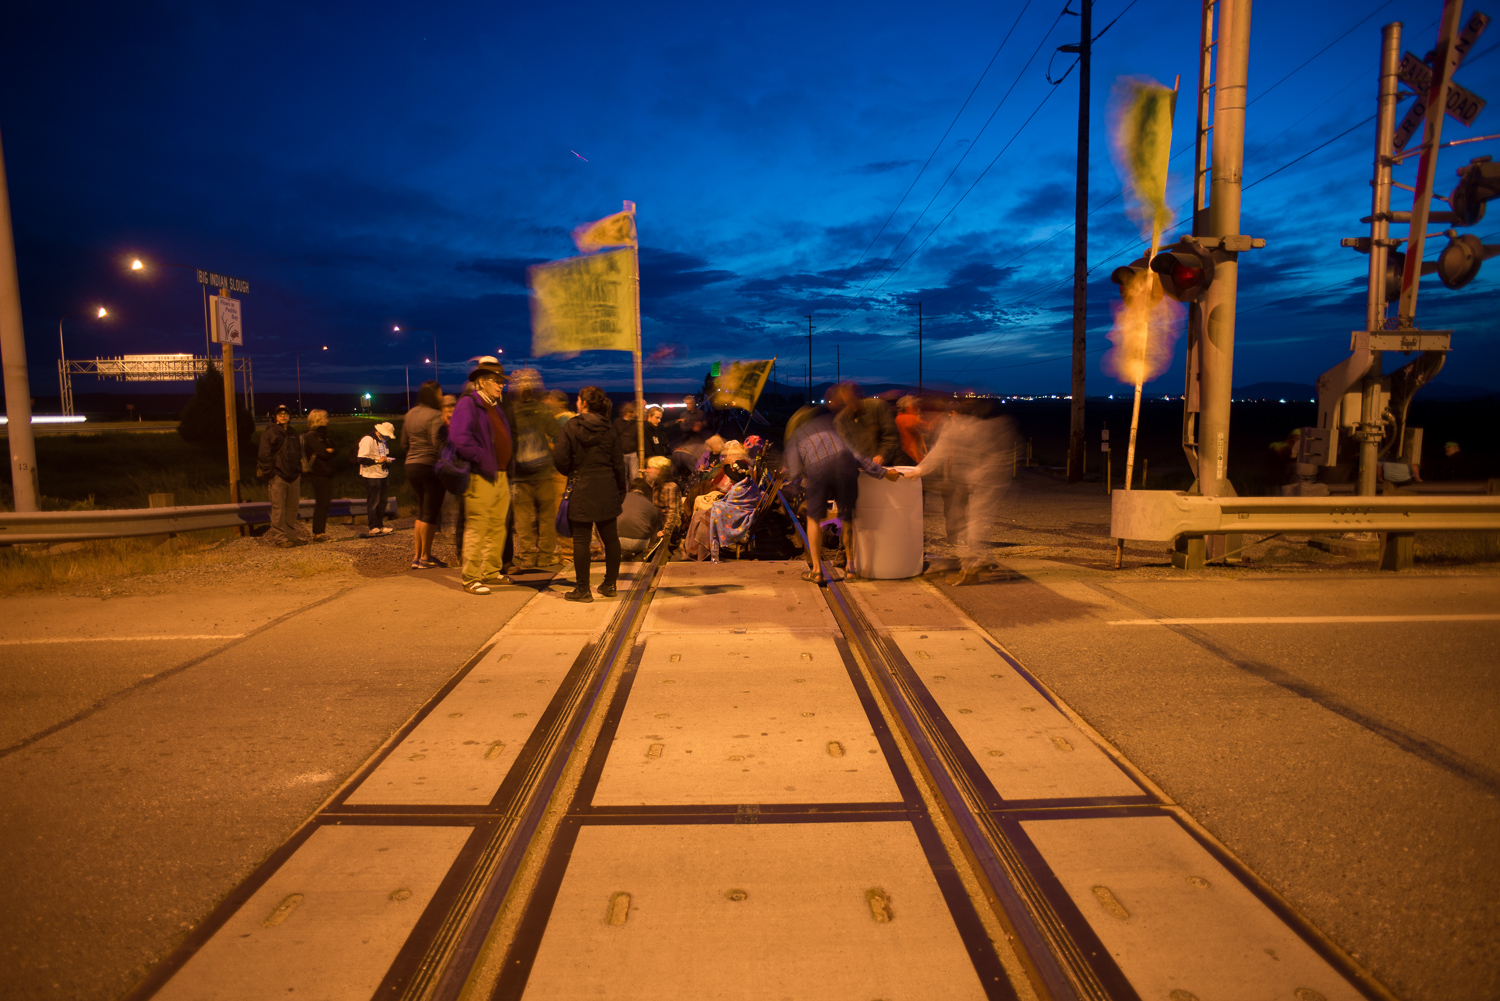 Images shows activists blockading oil trains.